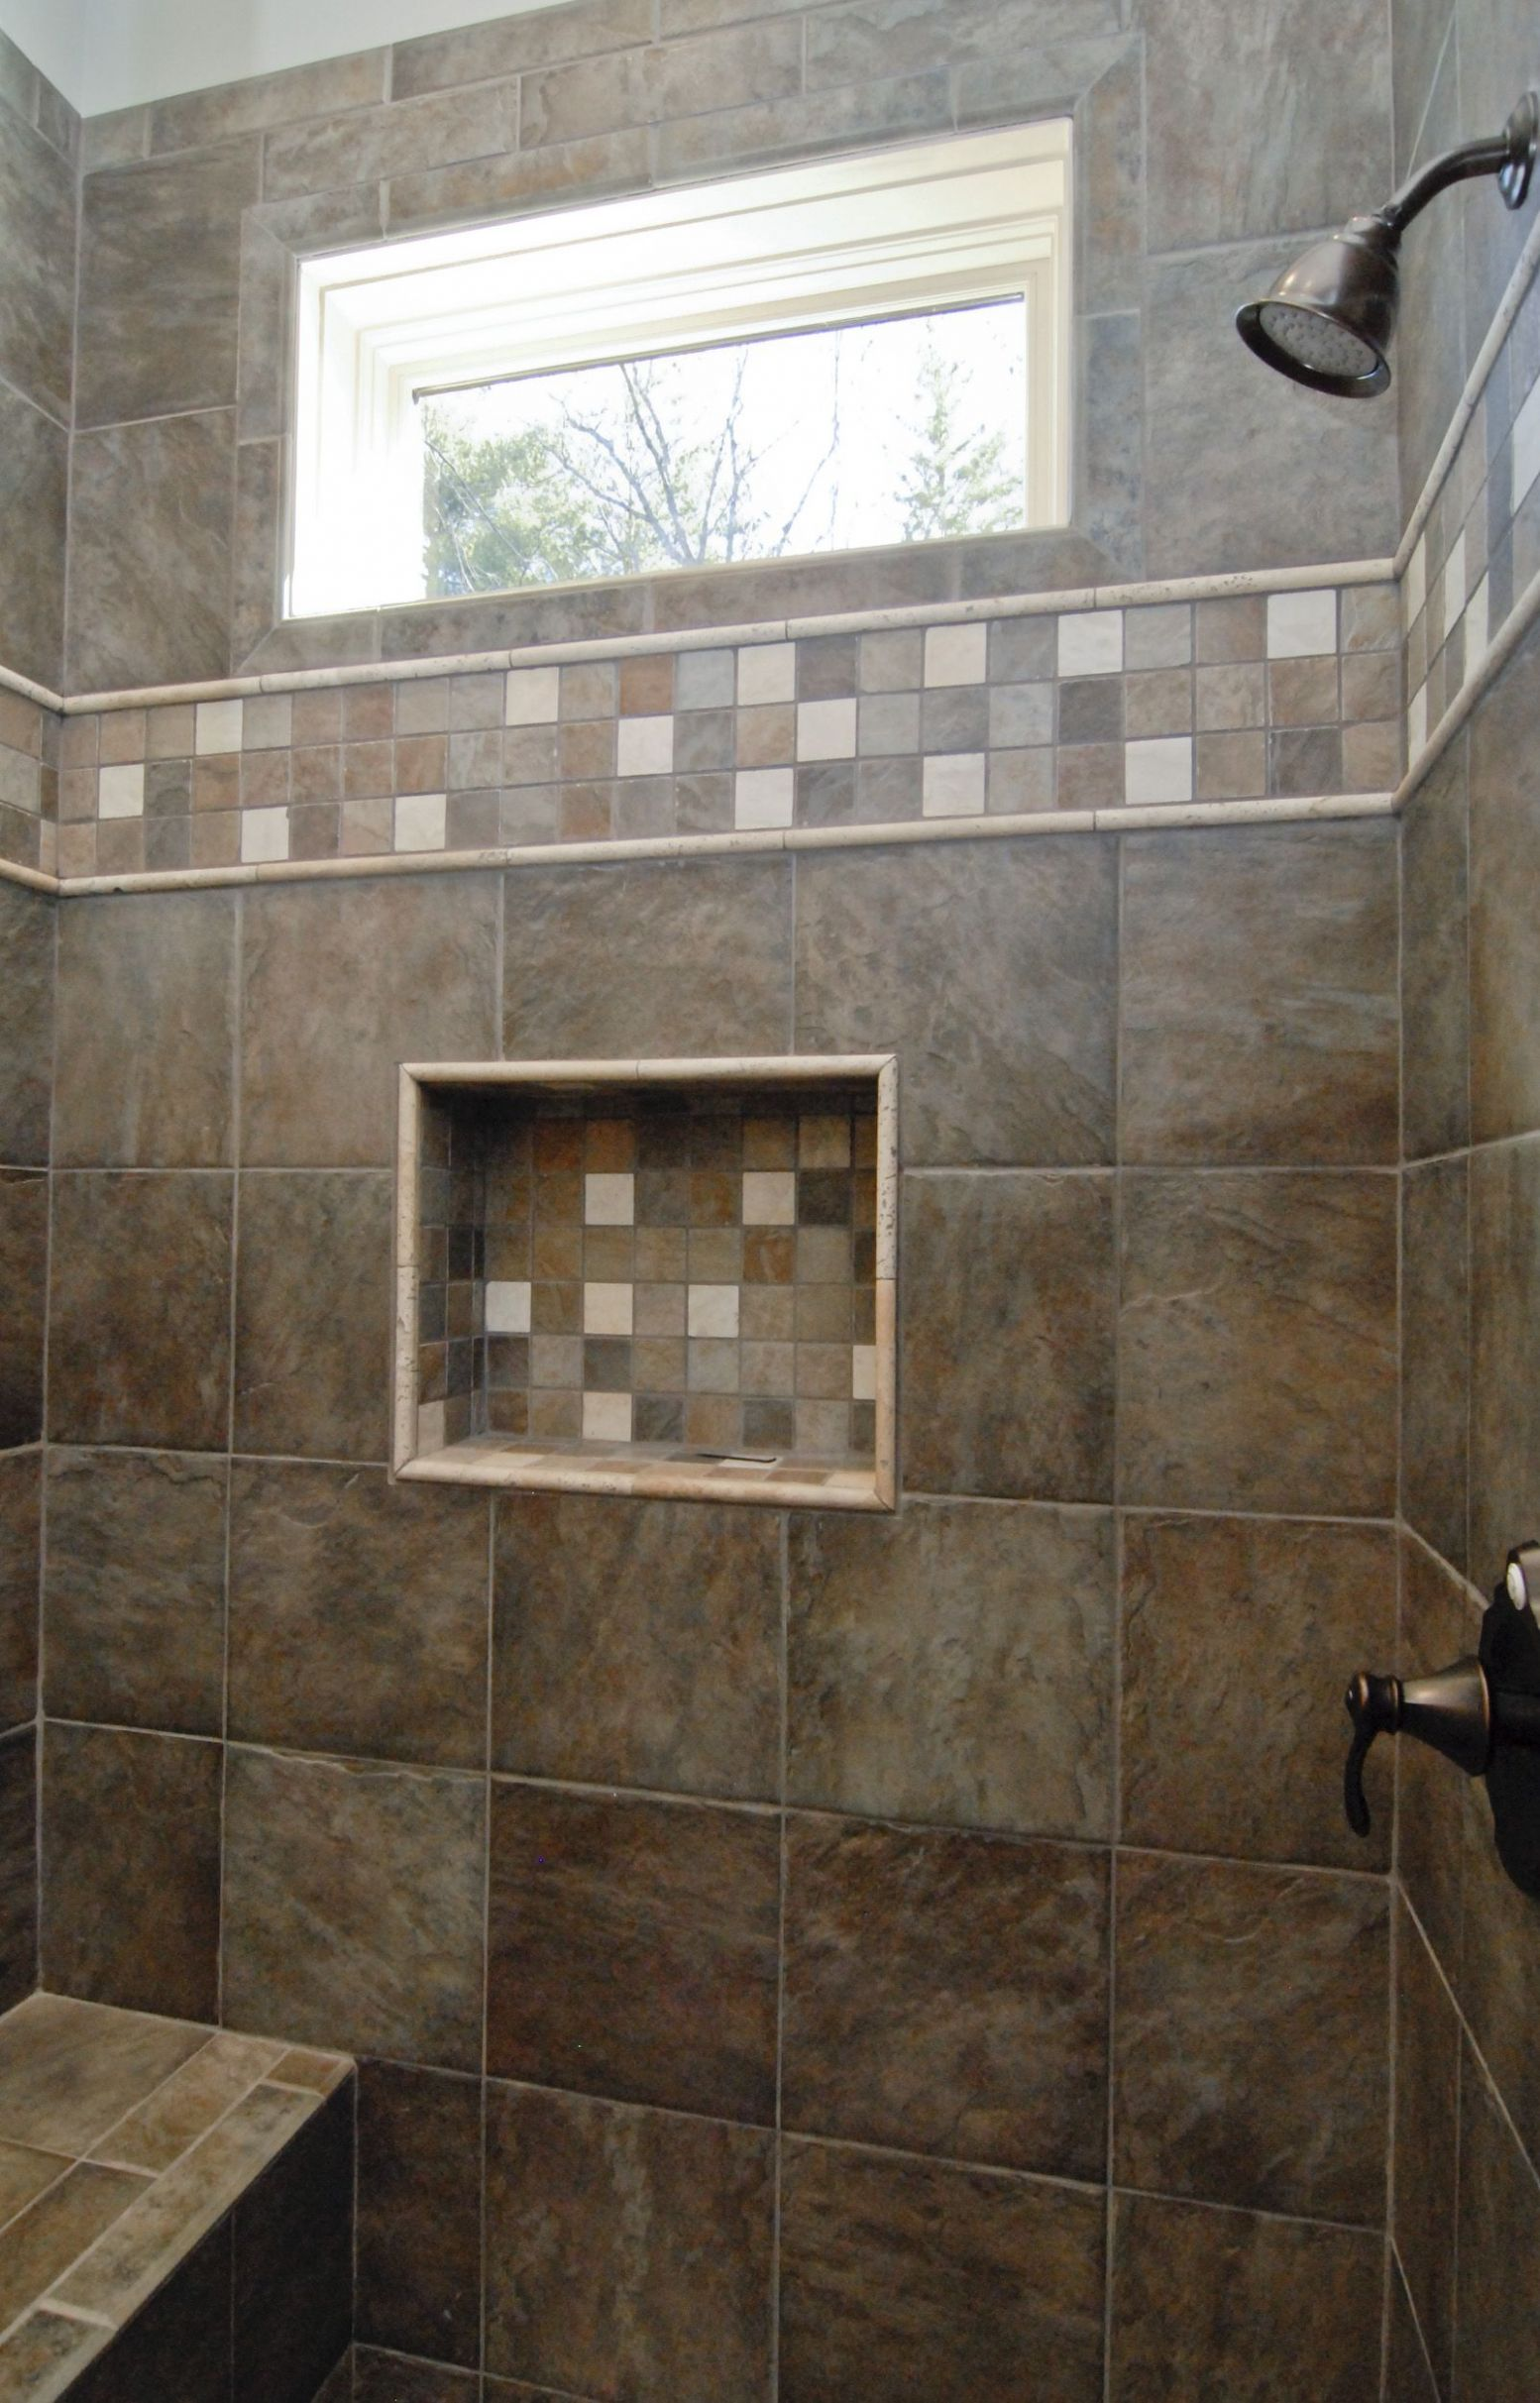 Custom Home Builder (With images) | Window in shower, Tile walk in ...